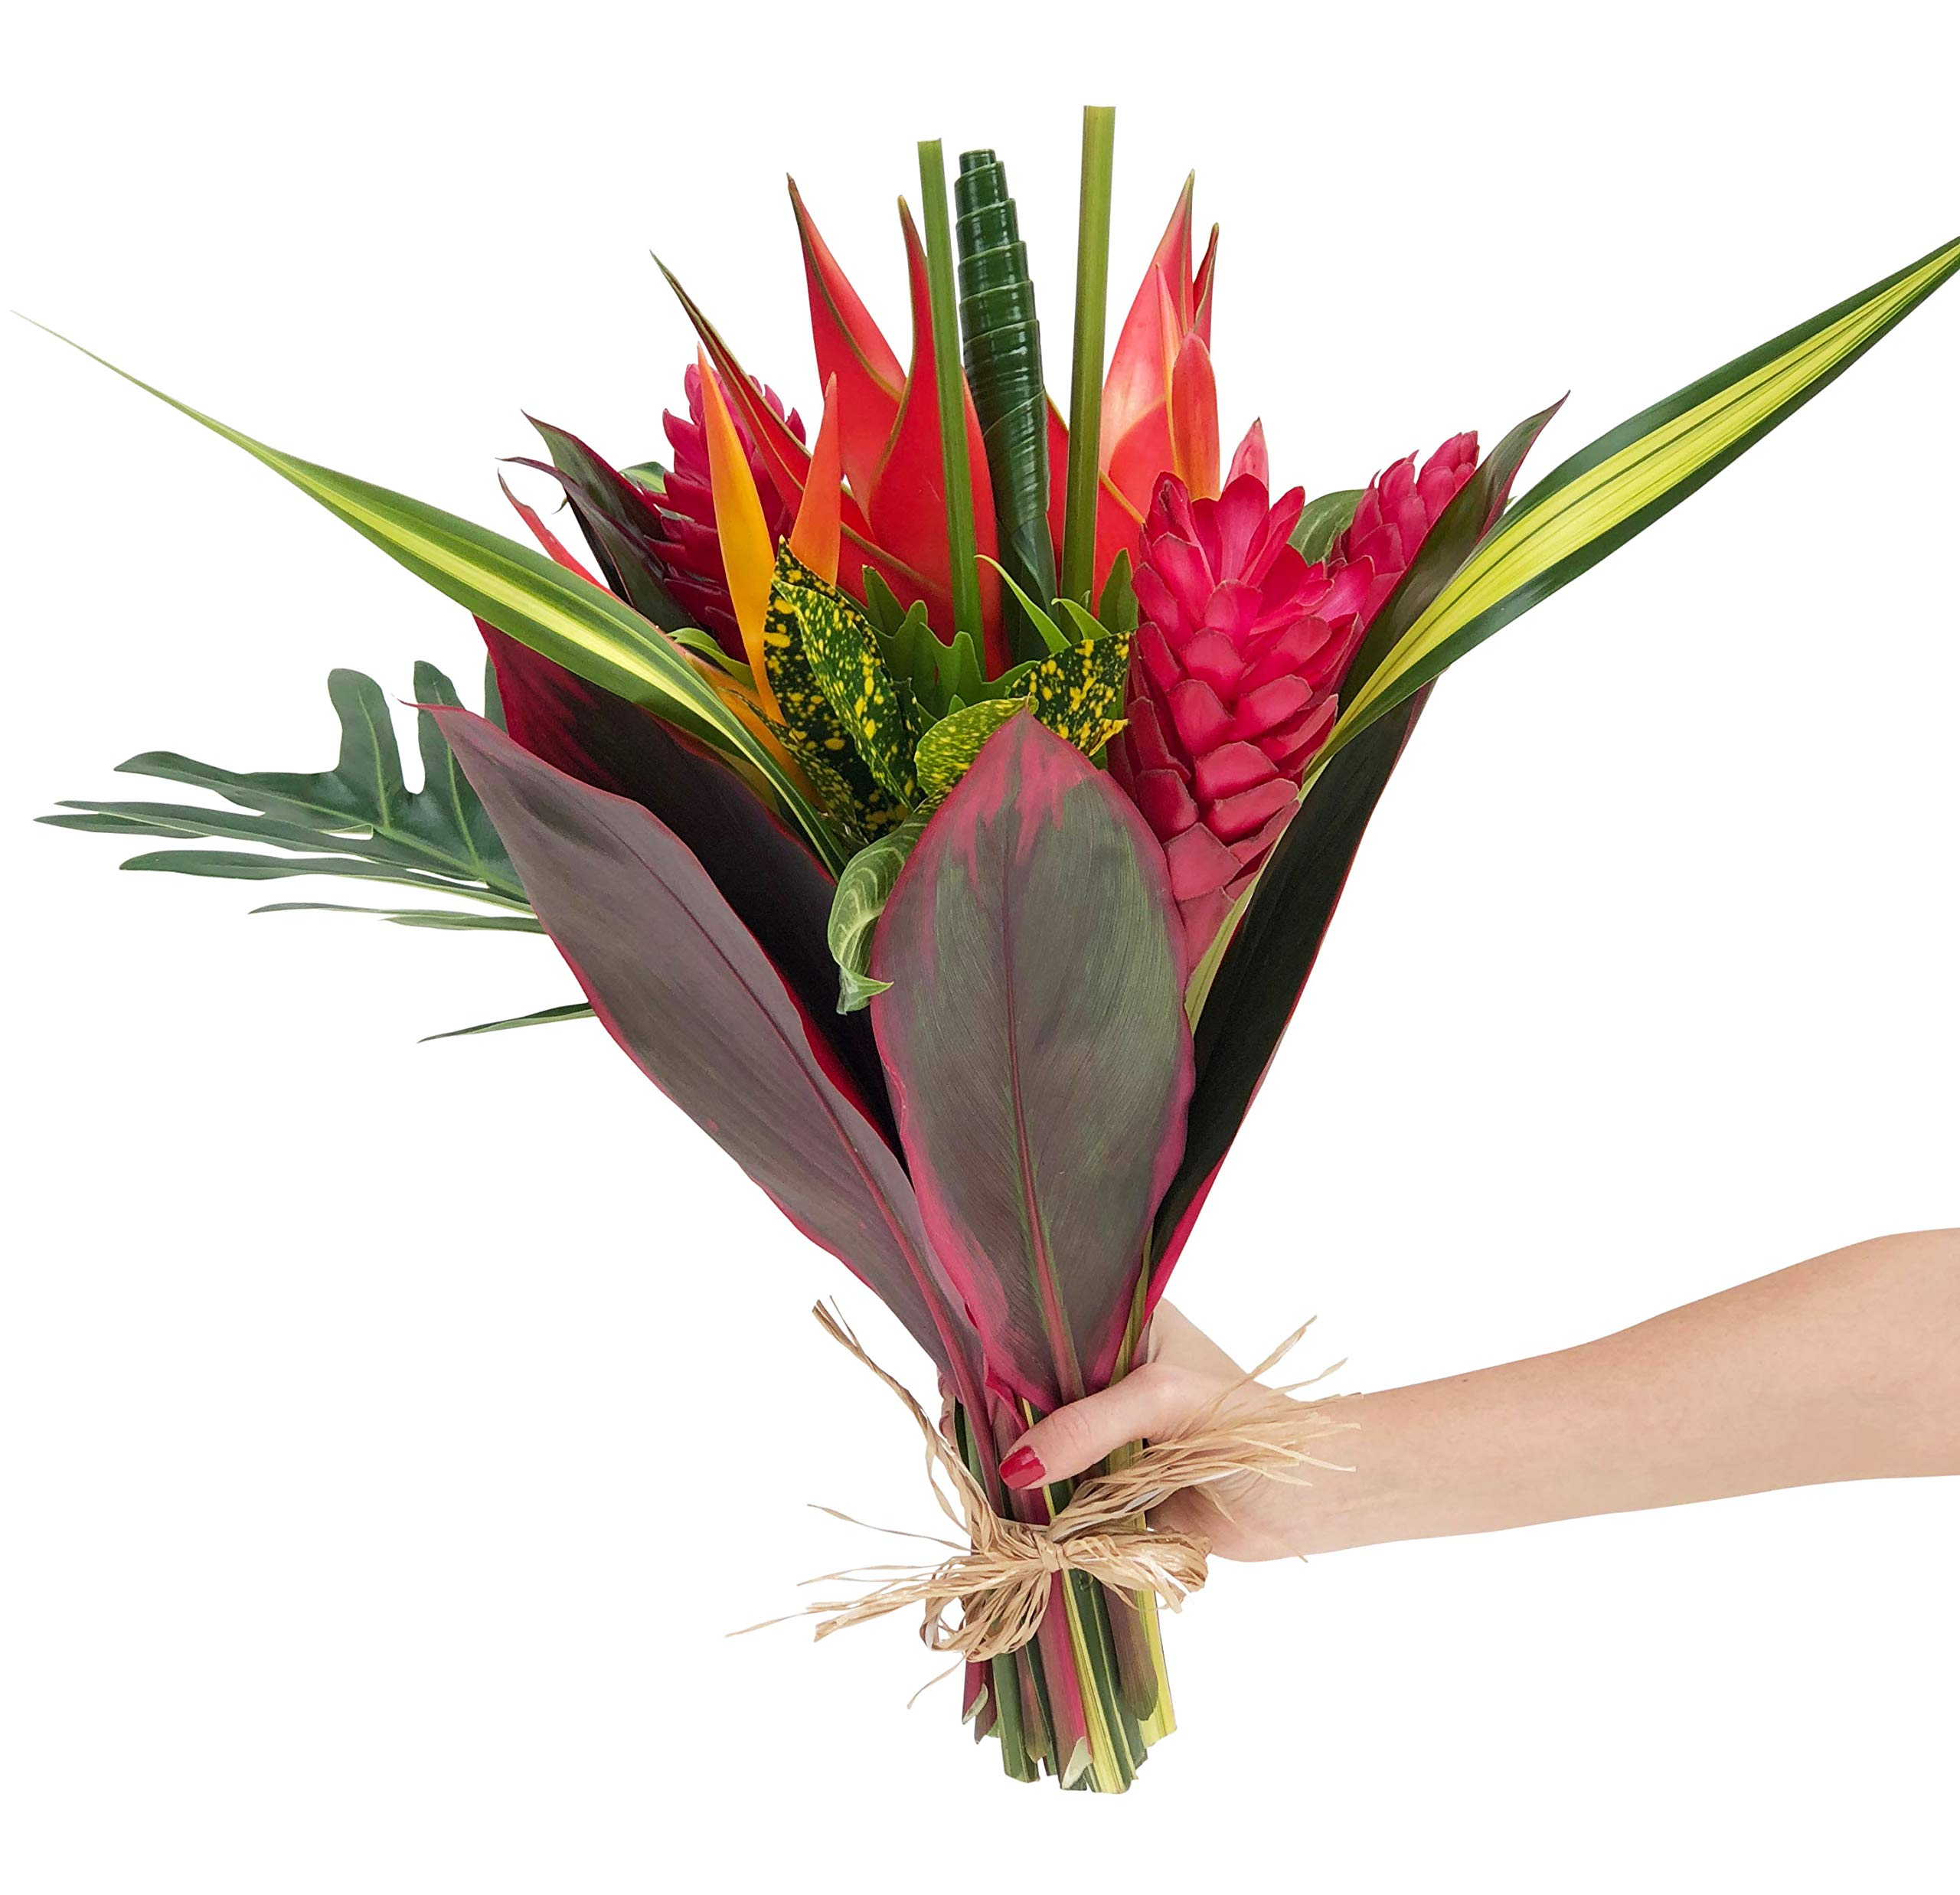 Tropical Bouquet Tropical Treasure with Bright Birds of Paradise, Pink Ginger, and Bold Tropical Greenery by BloomsyBox (Image #4)